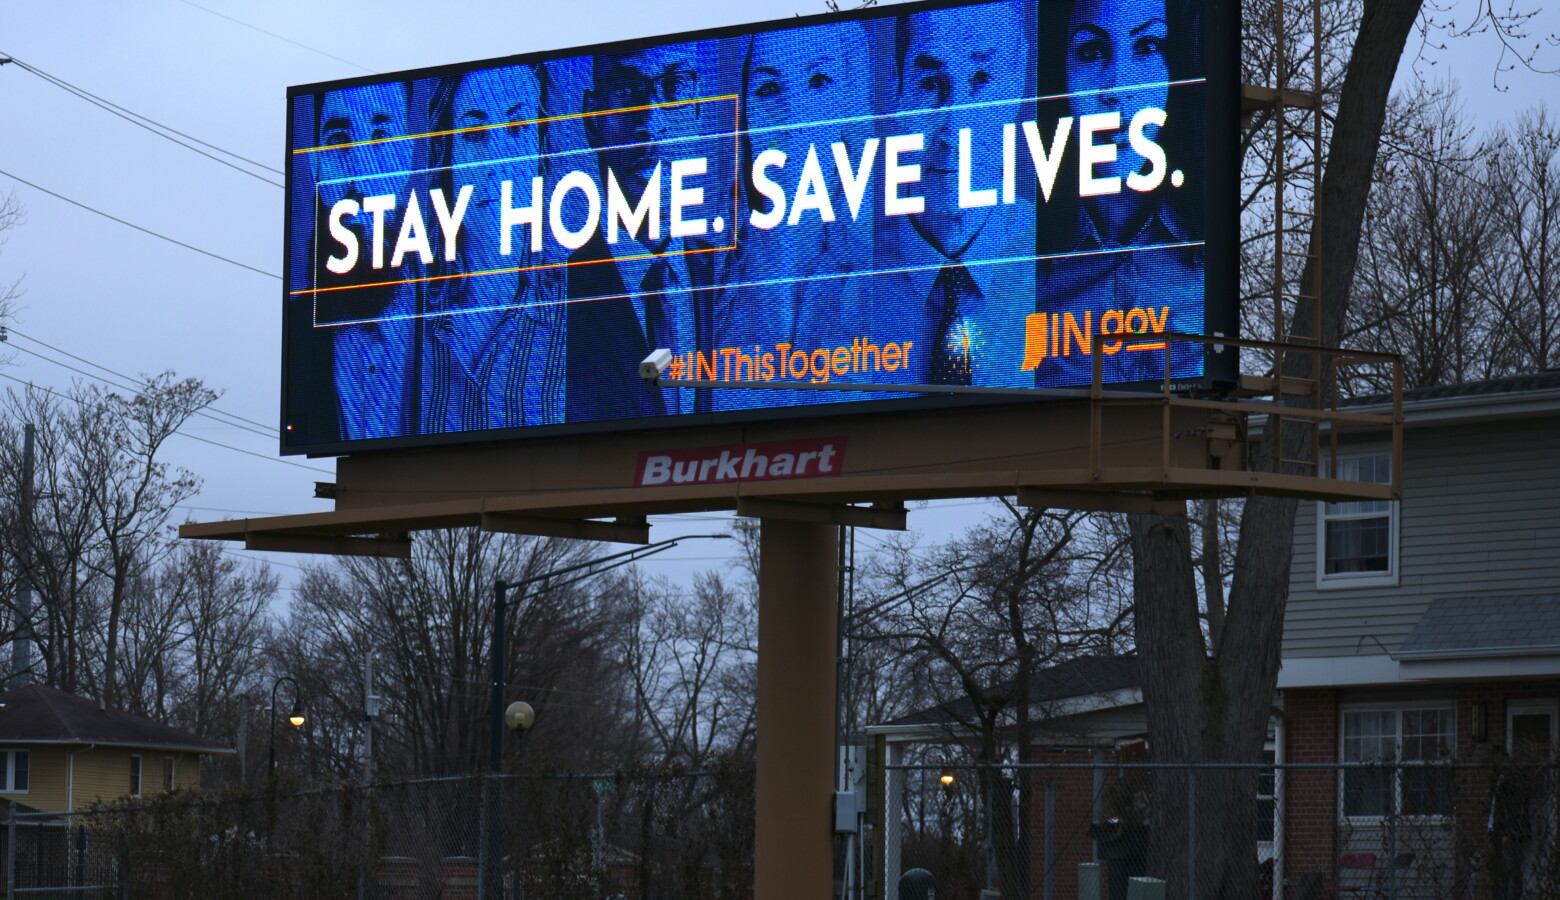 Hoosiers must stay at home as much as possible for another two weeks, through April 20 after Gov. Eric Holcomb officially extended his order. (Justin Hicks/IPB News)